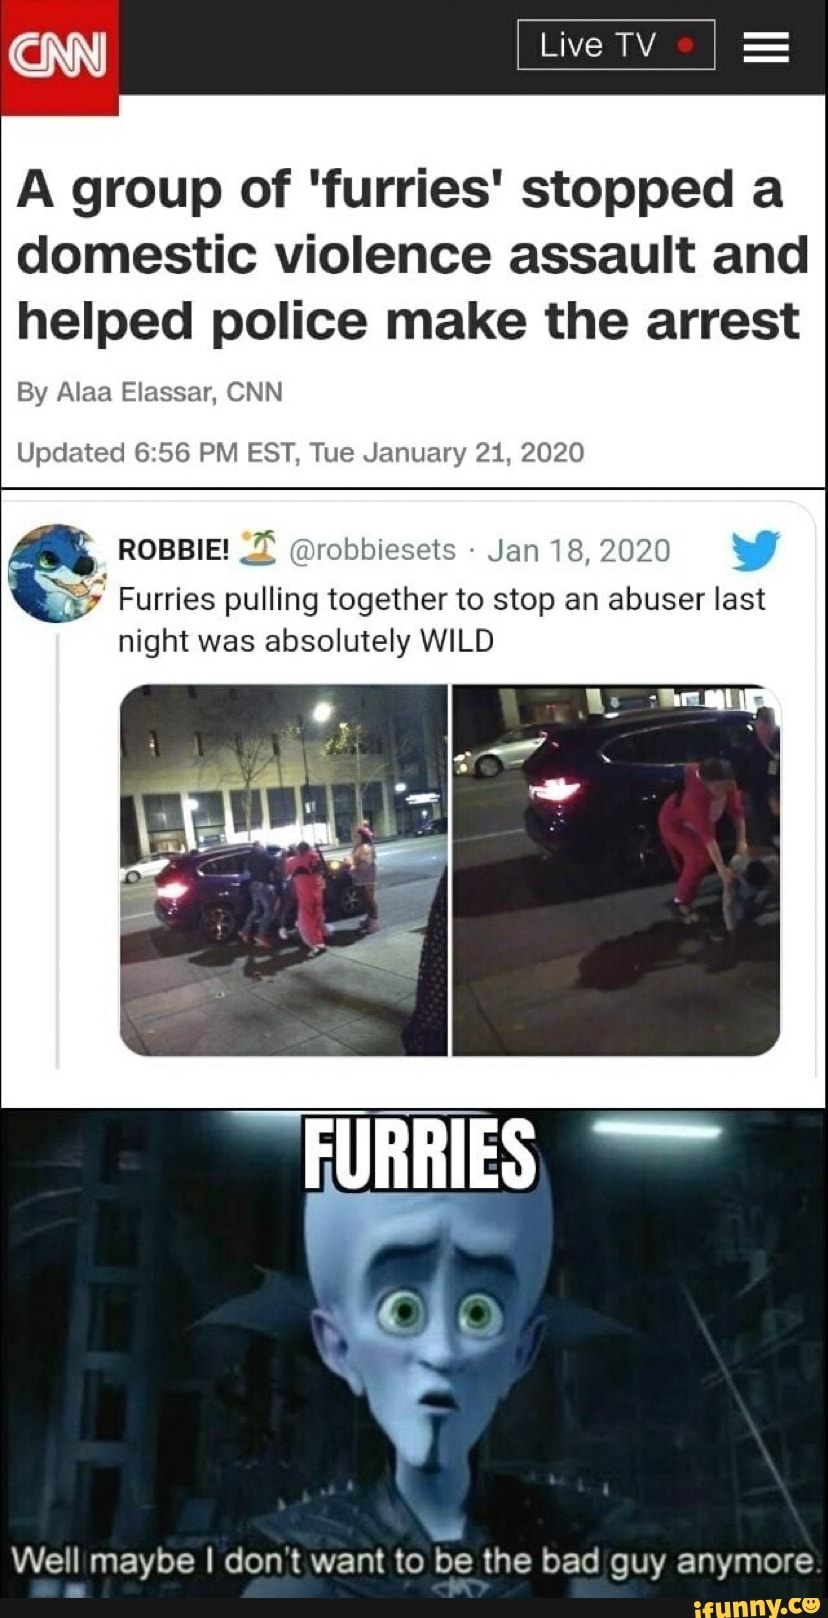 CNN) Live TV A group of 'furries' stopped a domestic ...